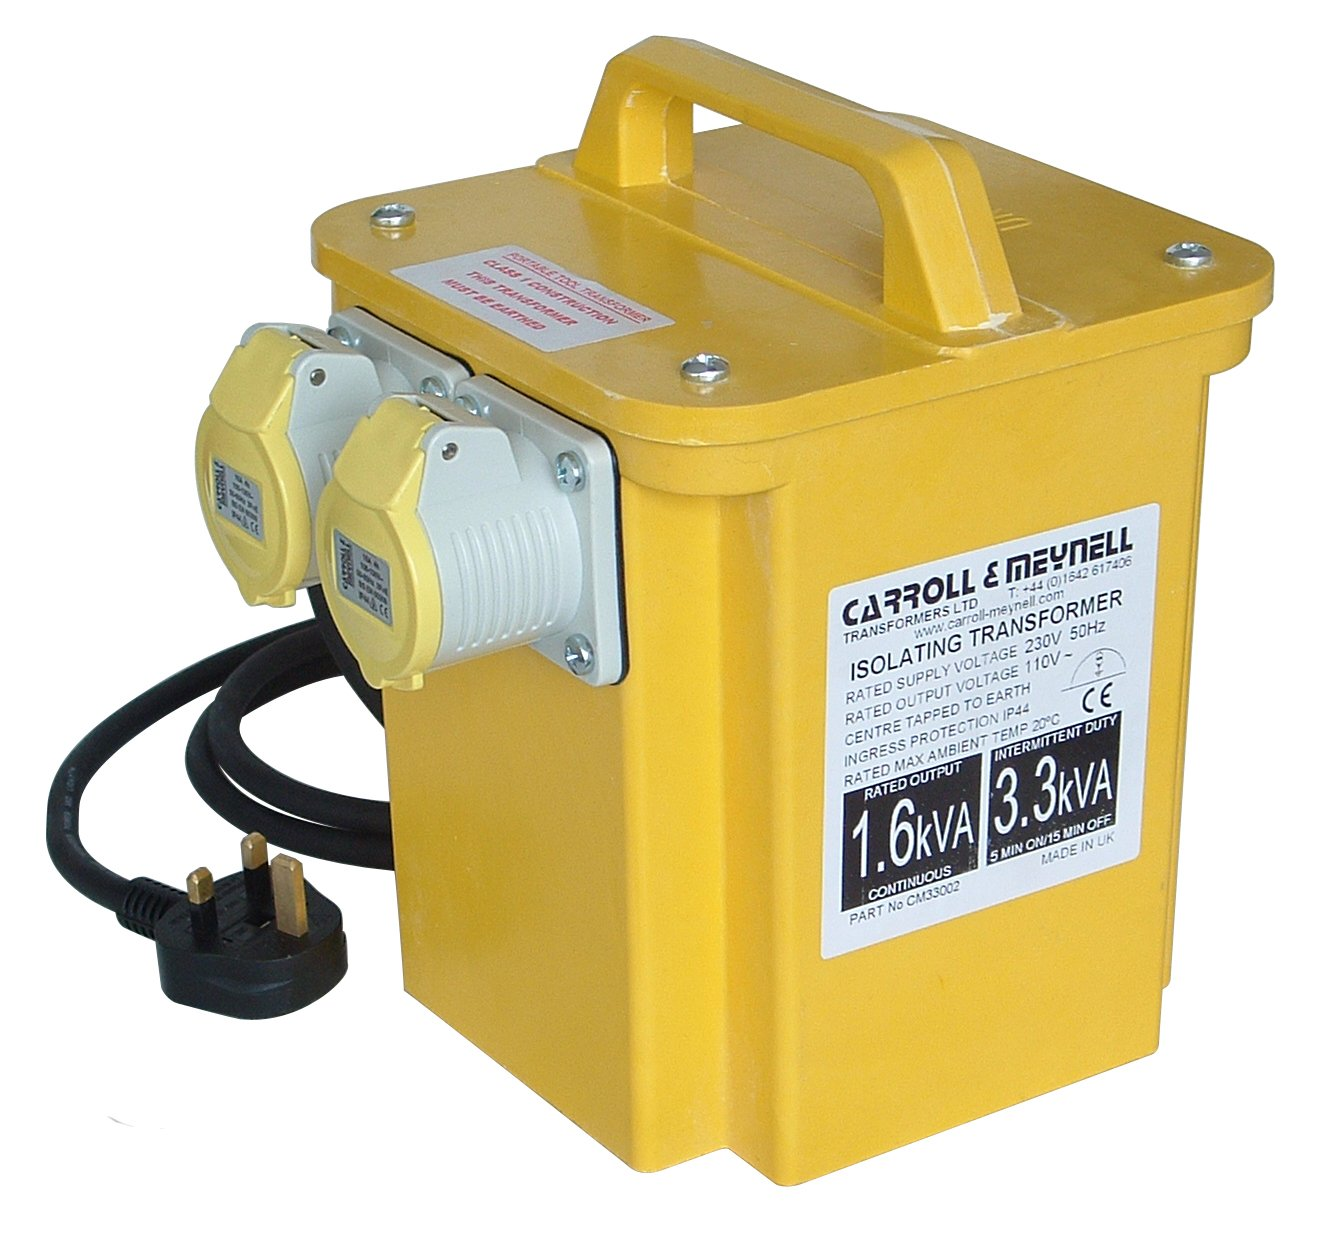 Carroll & Meynell 3300/2 Twin Outlet Transformer 3.3 Kva C/M33002